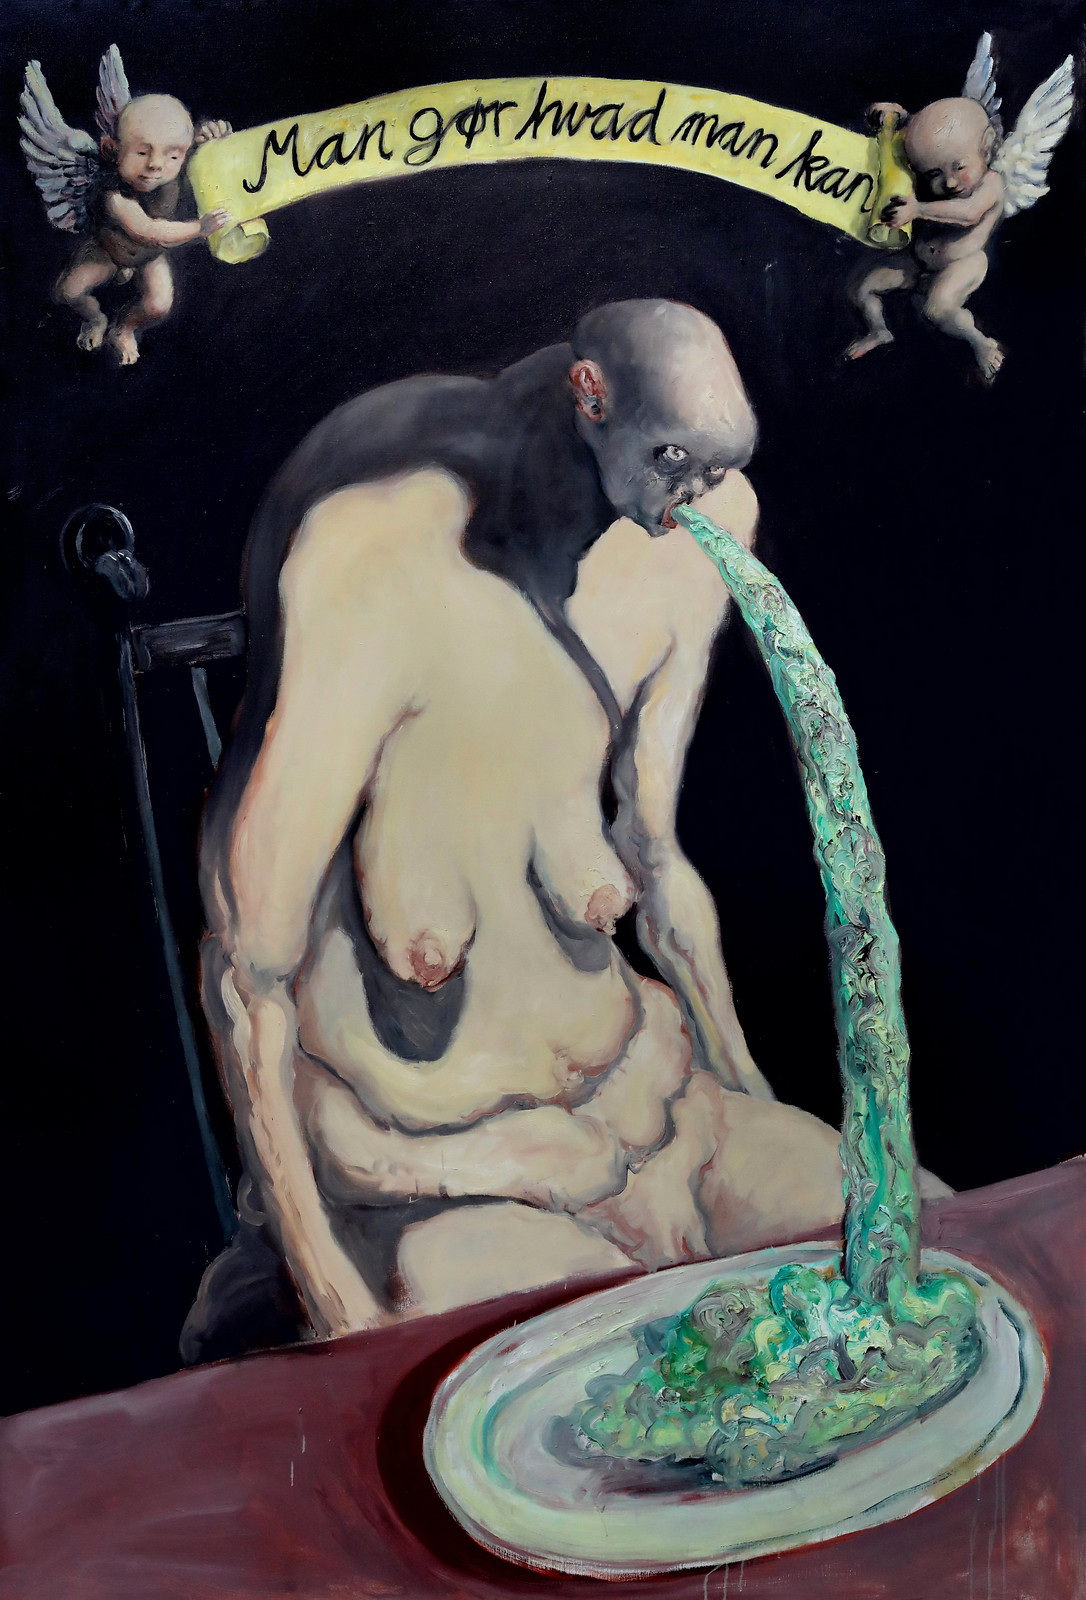 Michael Kvium - You do what you can (Oral moral II), 1995